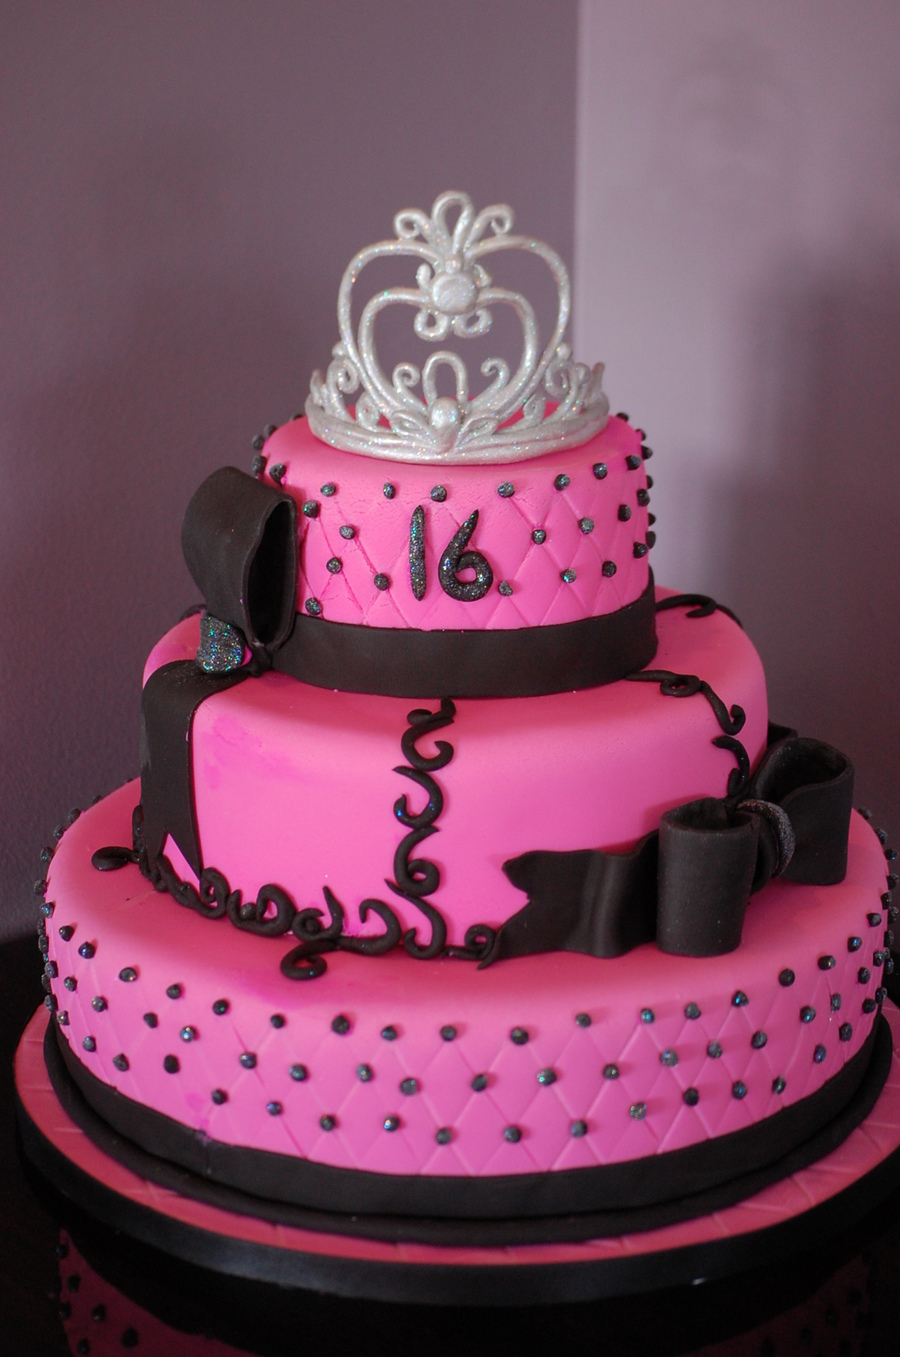 Enjoyable Pink And Black Sweet 16 Birthday Cake The Crown Was Made Out Of Personalised Birthday Cards Sponlily Jamesorg